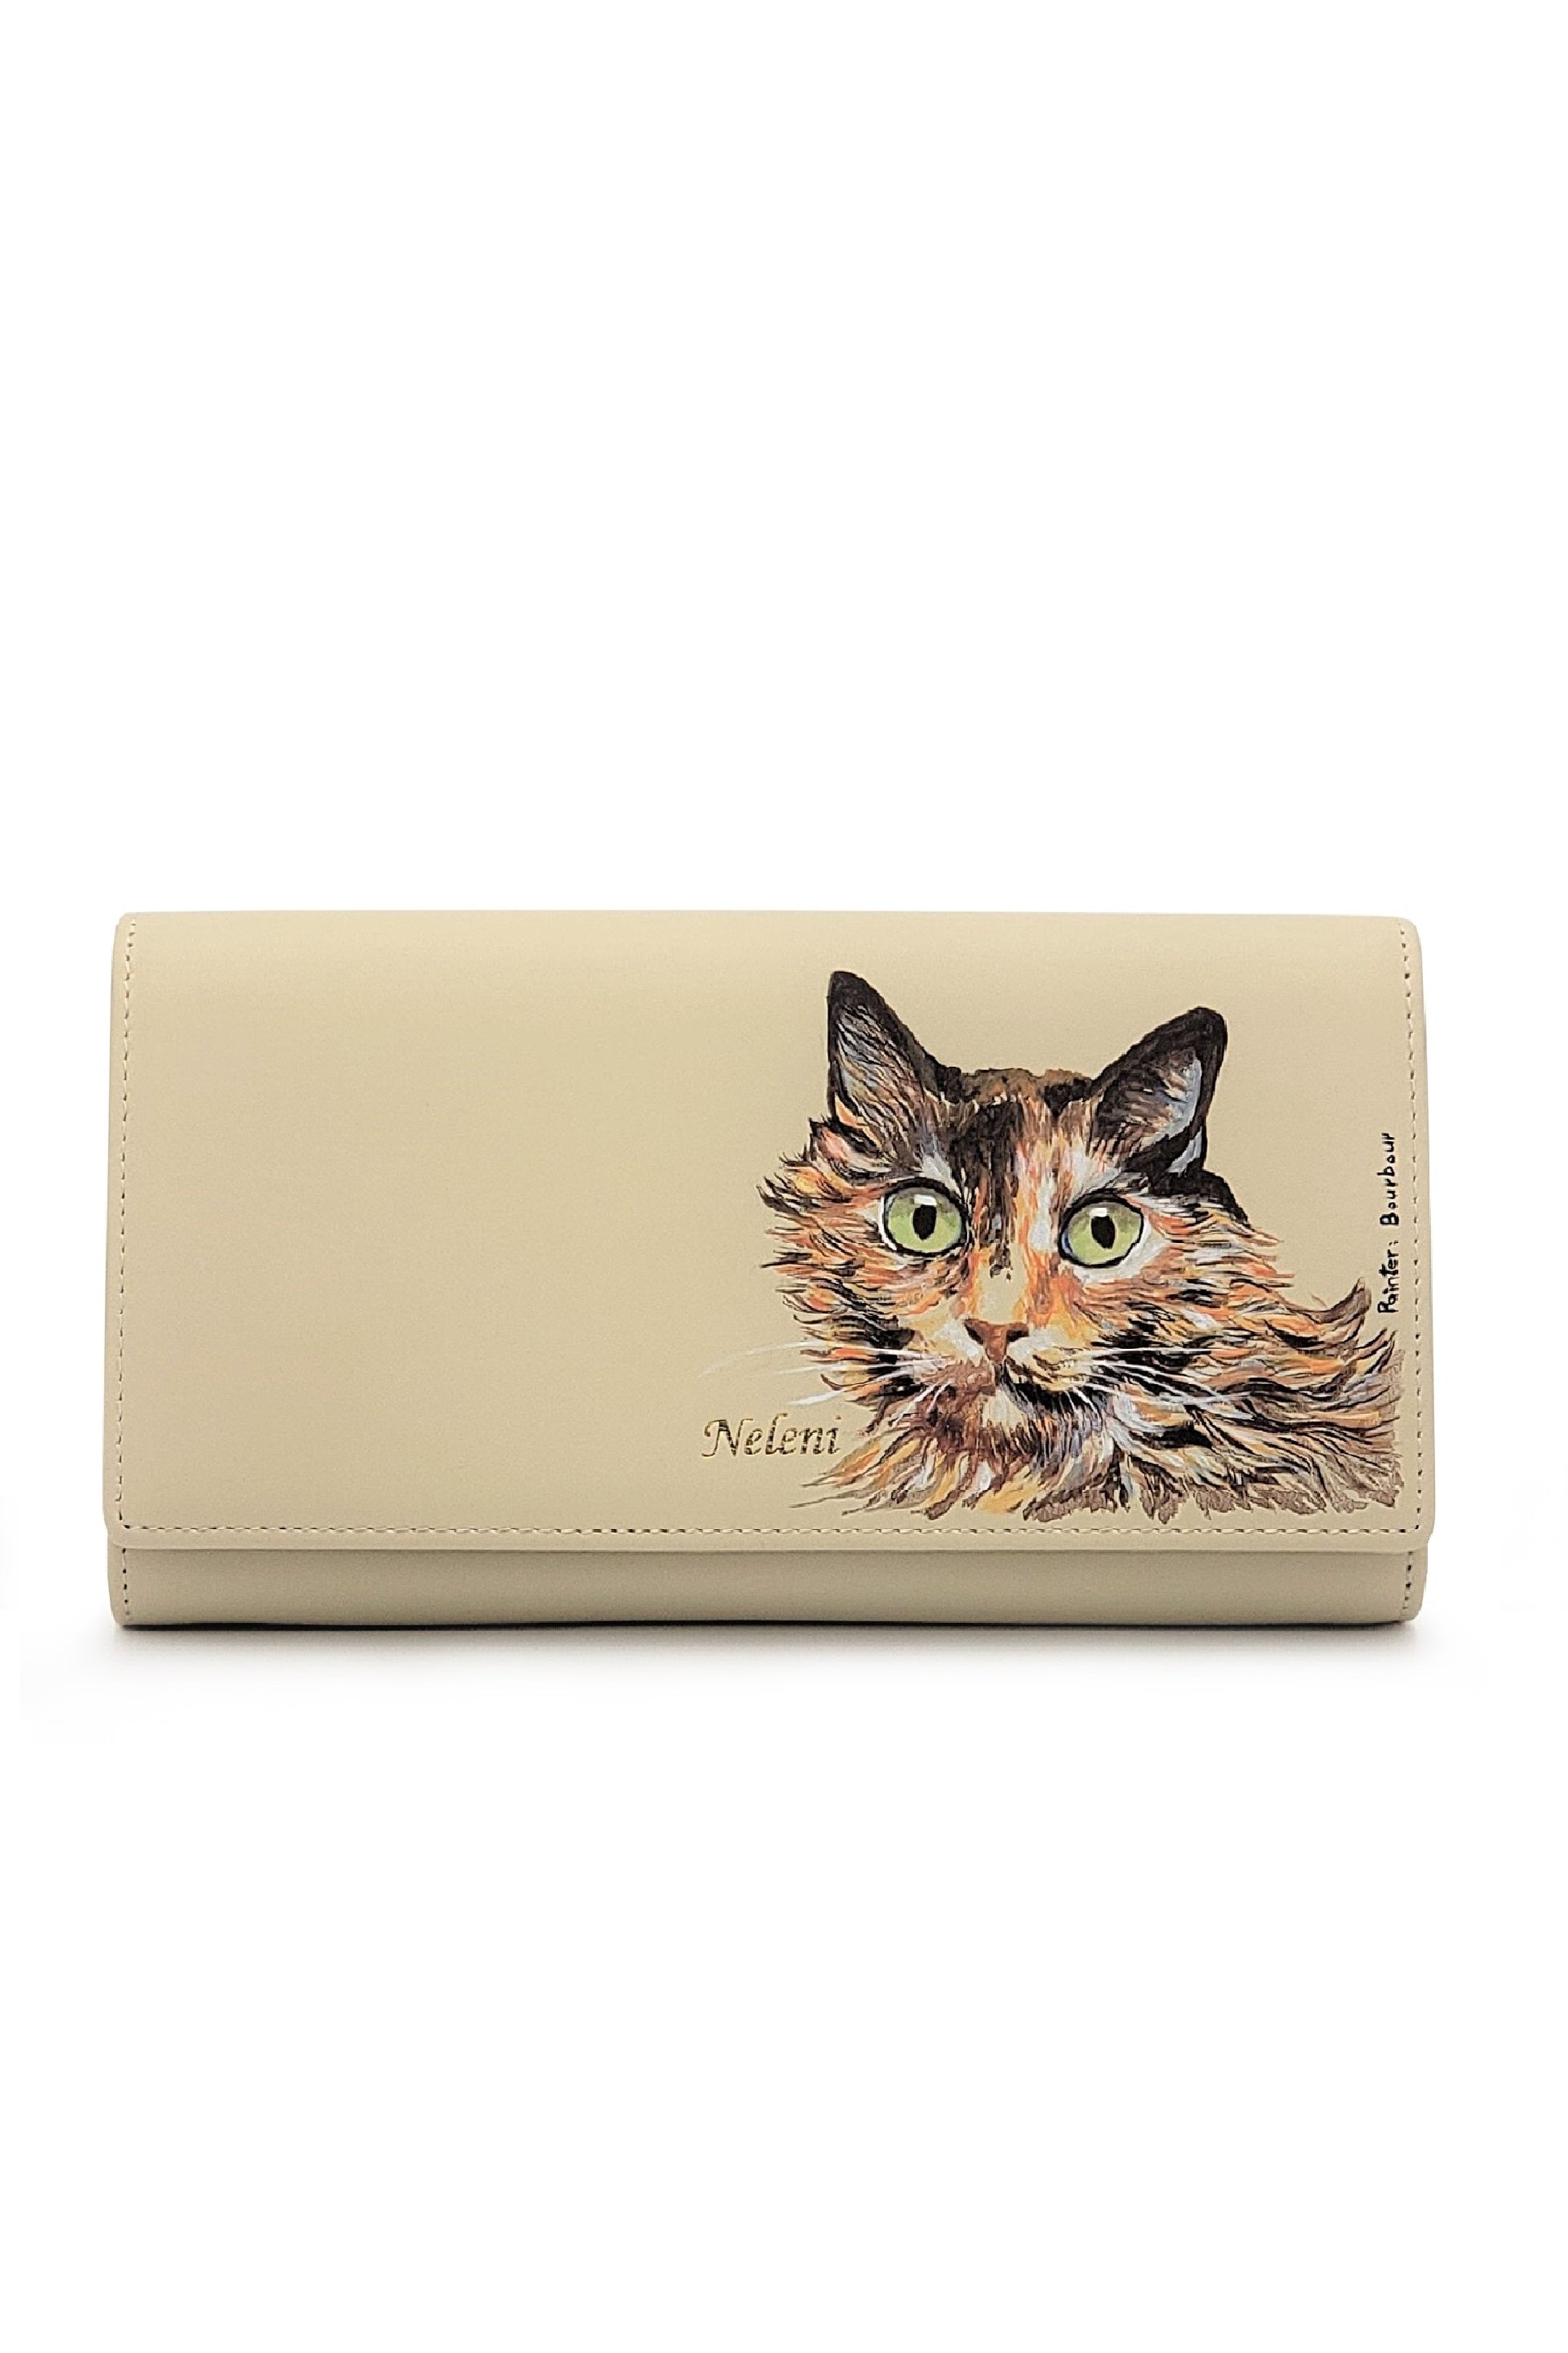 Maine Wallet (Sold Out)